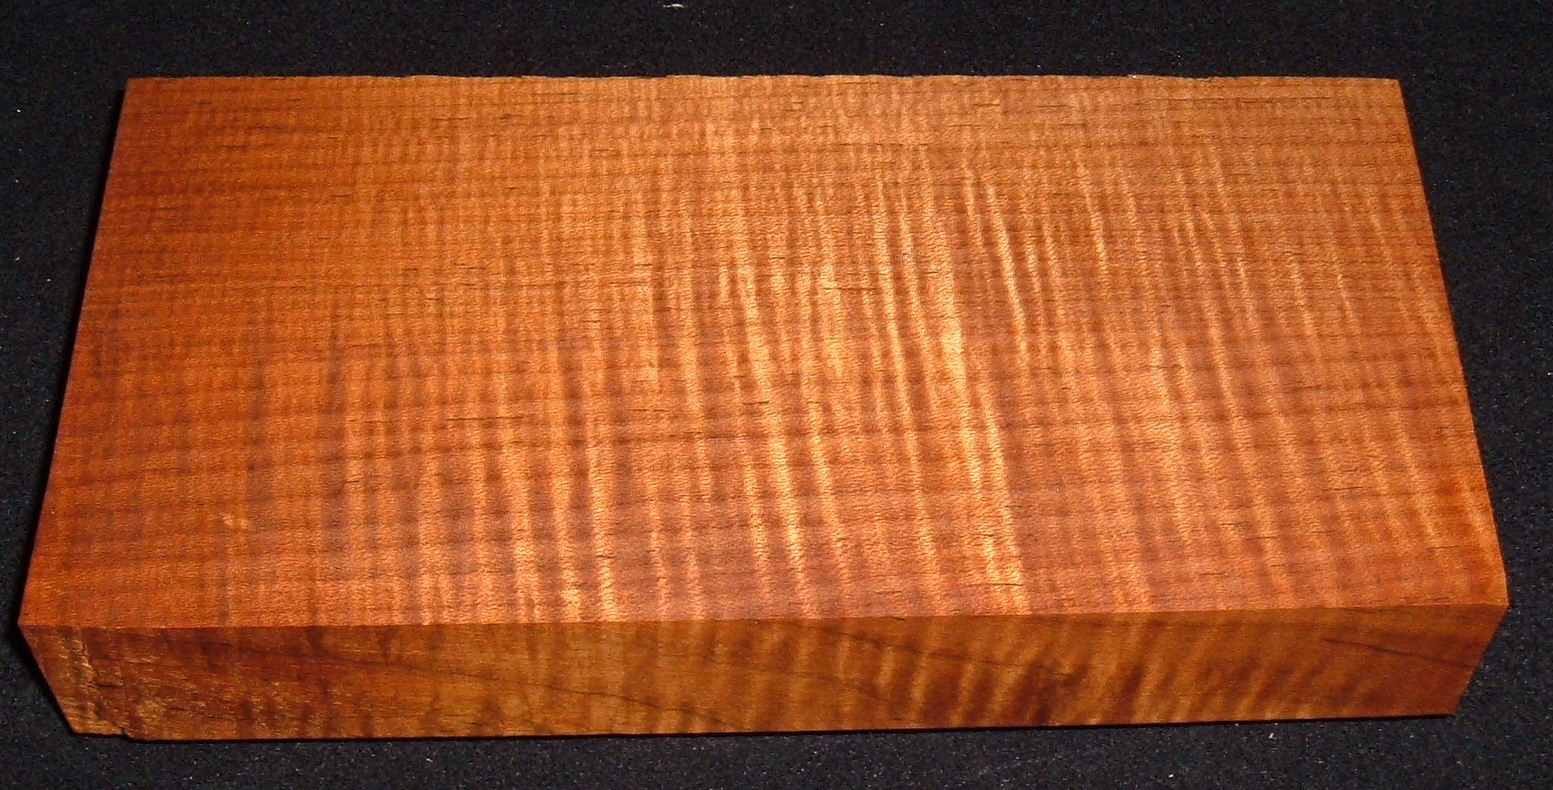 QRMS-3175, 1-7/8x5-1/2x11, Quartersawn Roasted Torrefied, Curly Tiger Maple